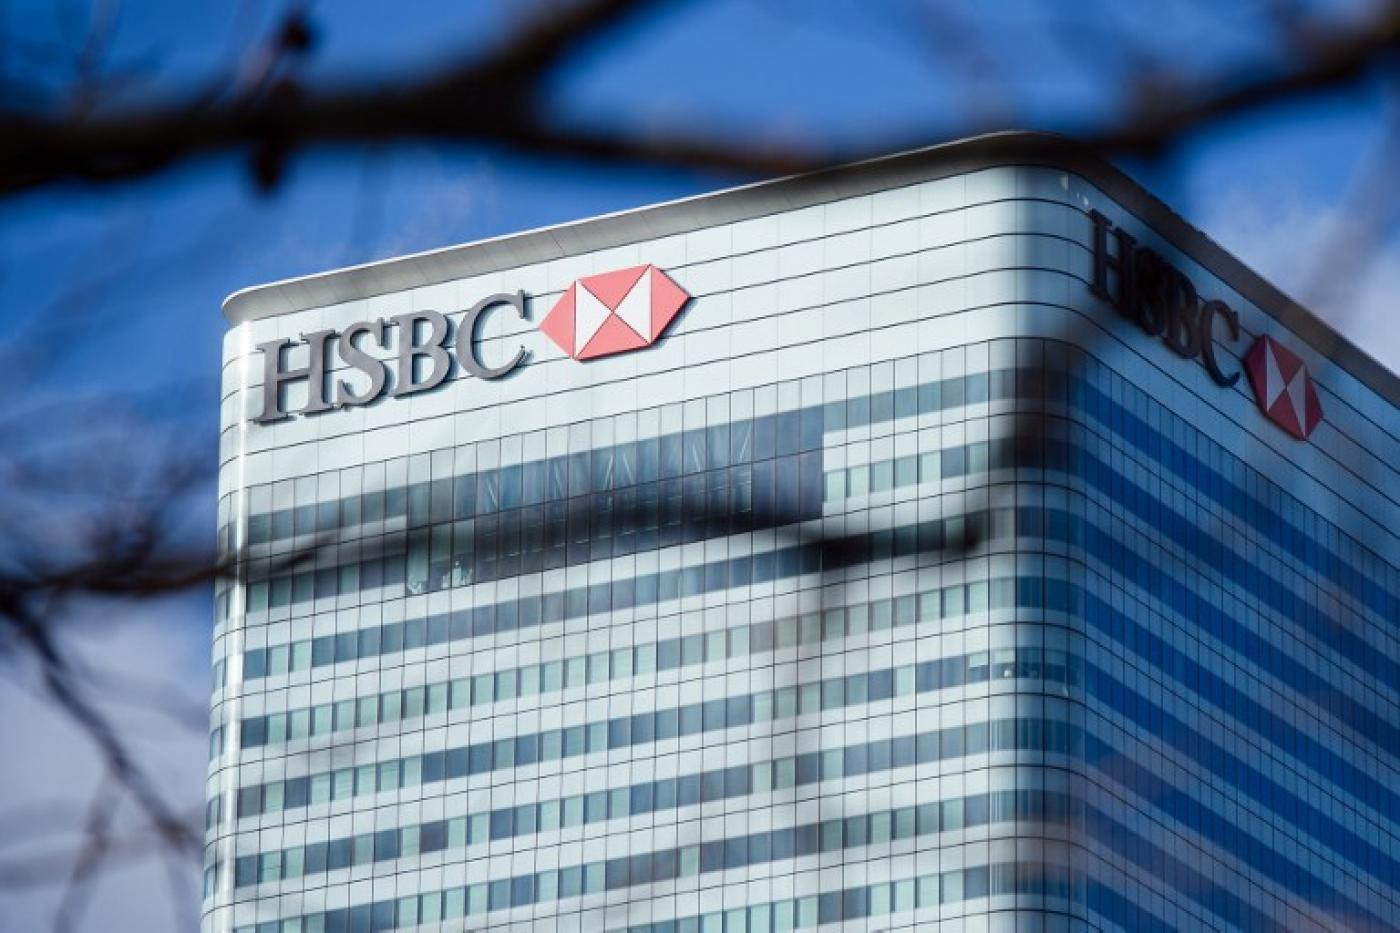 HSBC shuts accounts of Syrians in UK after 'lobbying' for Assad's